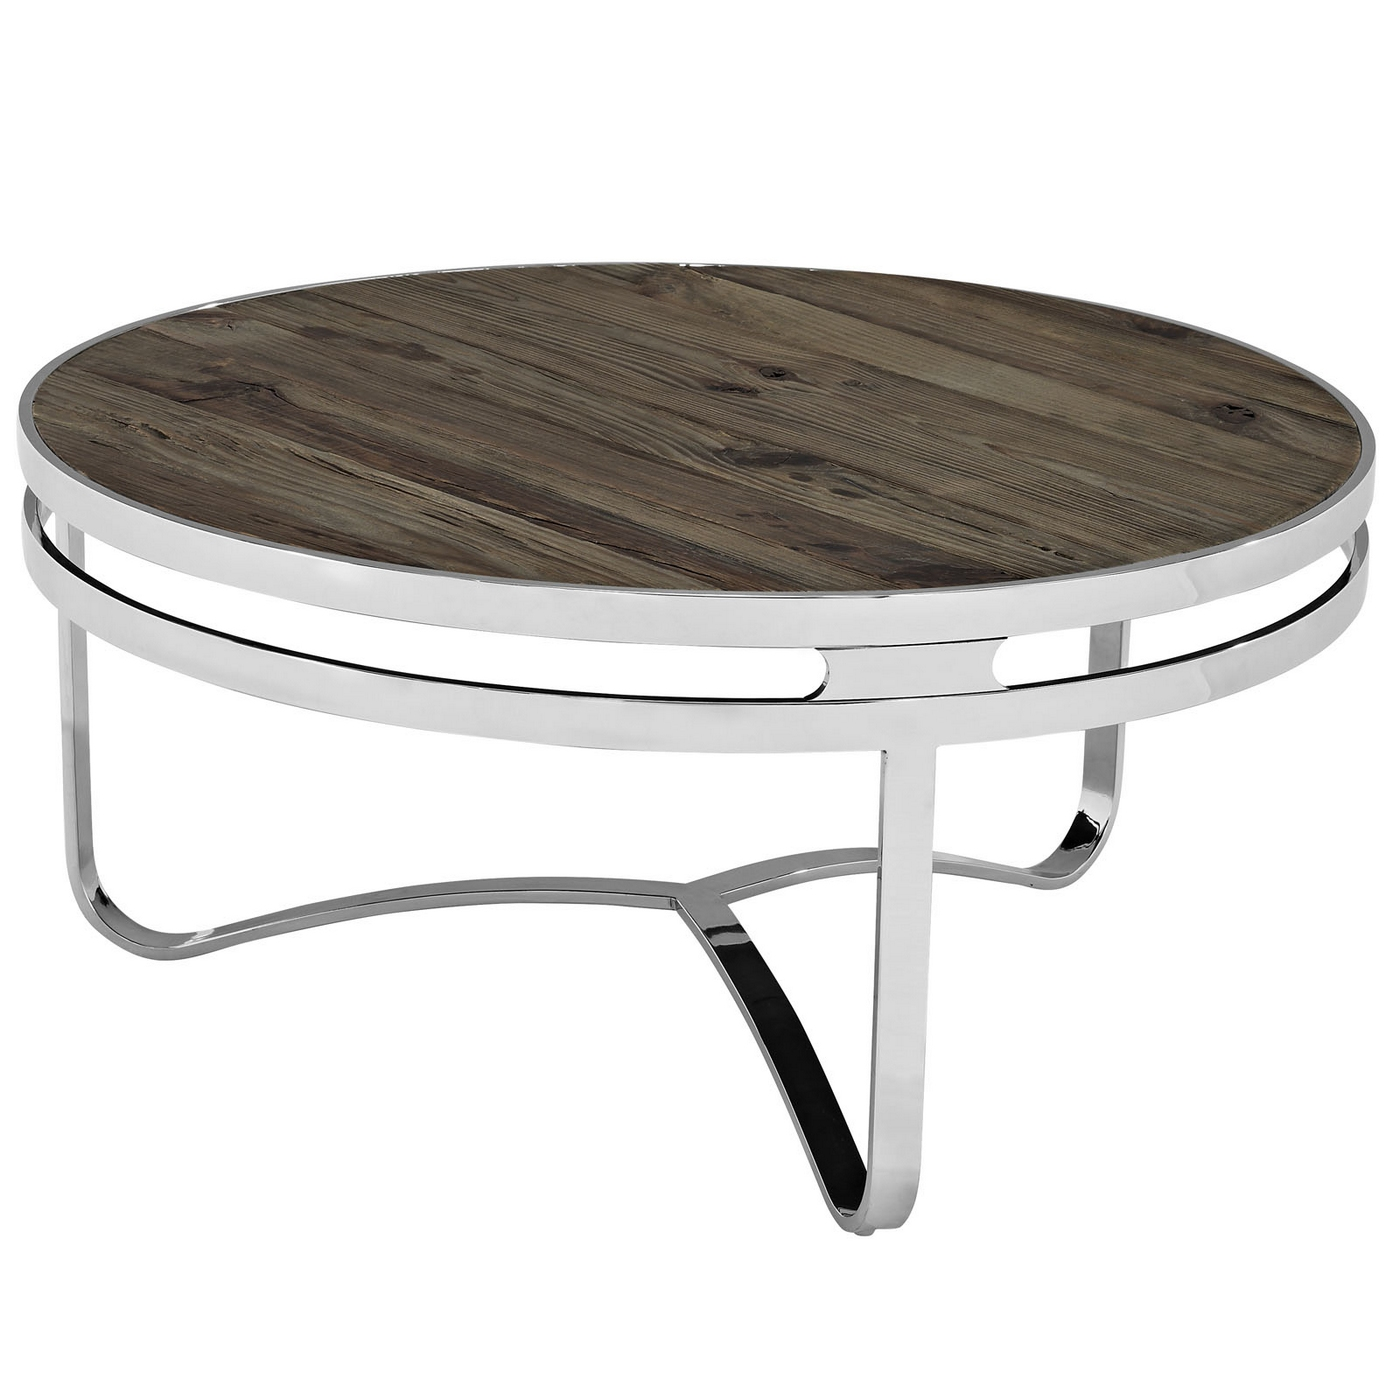 Chrome Coffee Table With Wood Top: Modern Round Coffee Table